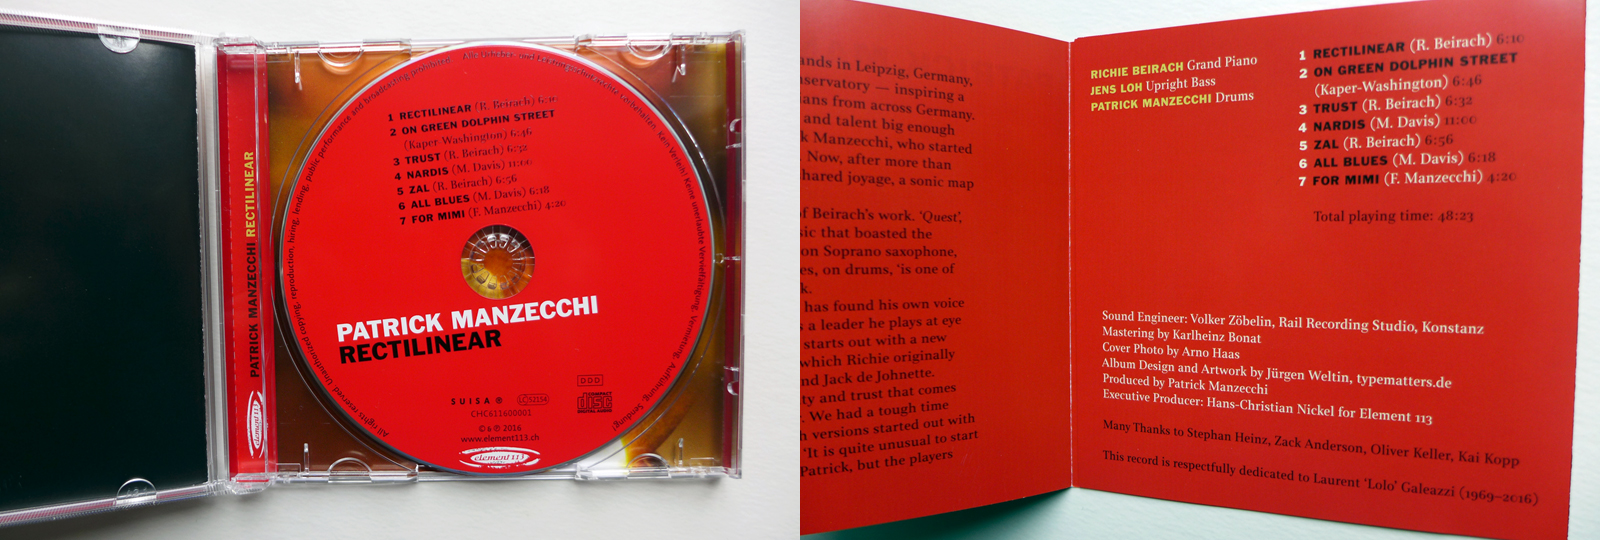 CD Booklet design Rectilinear: Patrick Manzecchi, Richie Beirach, Jens Loh